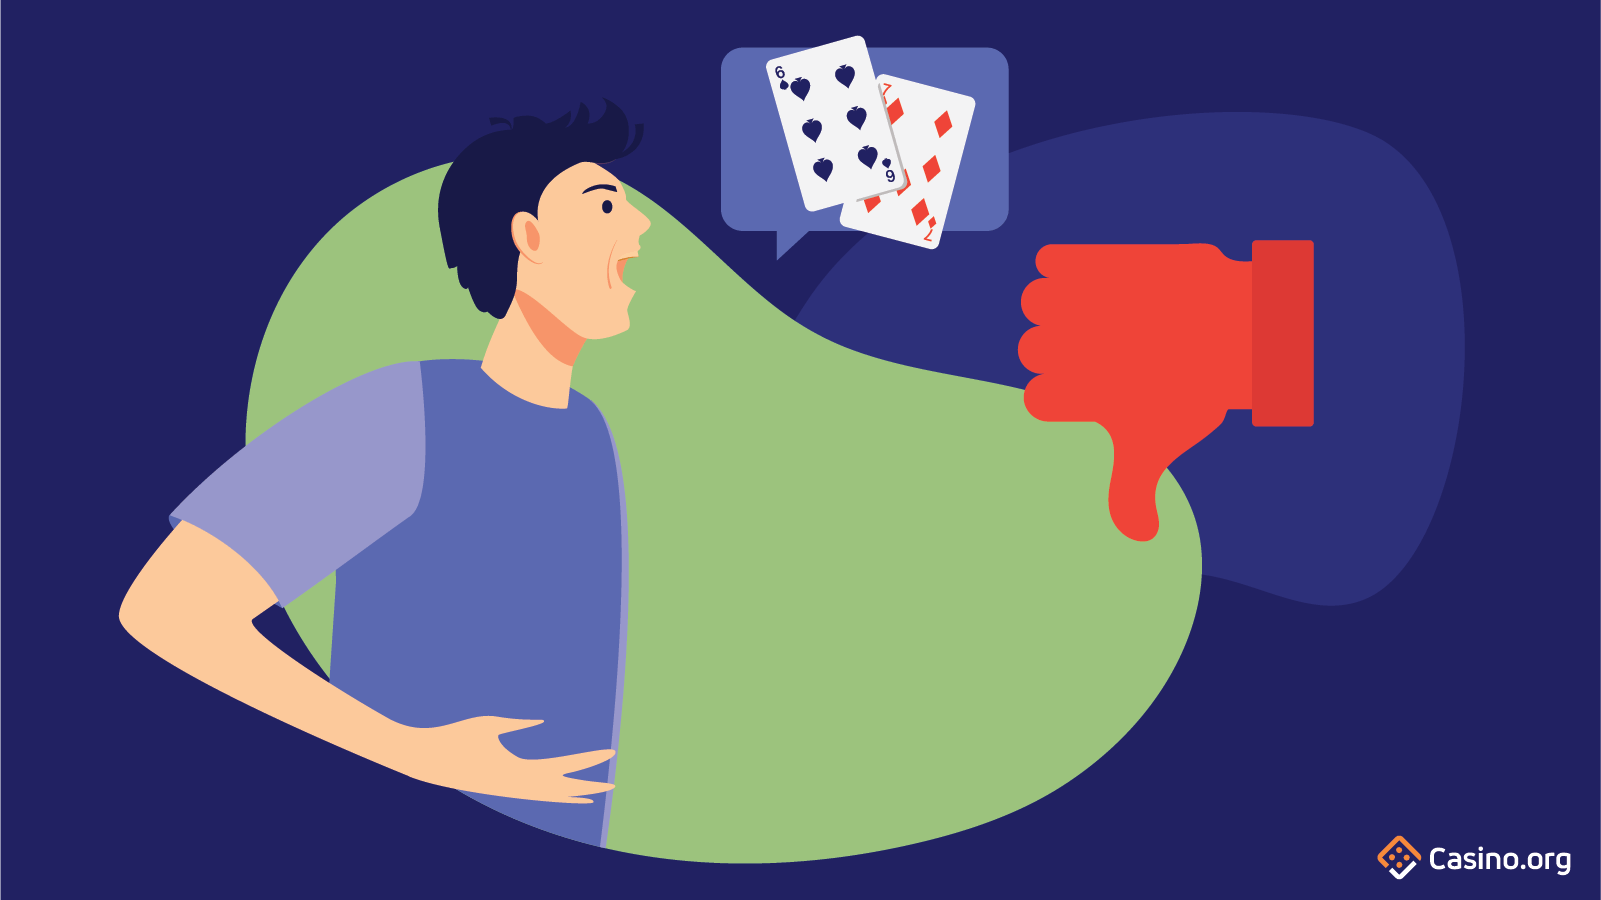 Someone declaring their poker hand, with a red thumb pointing down.